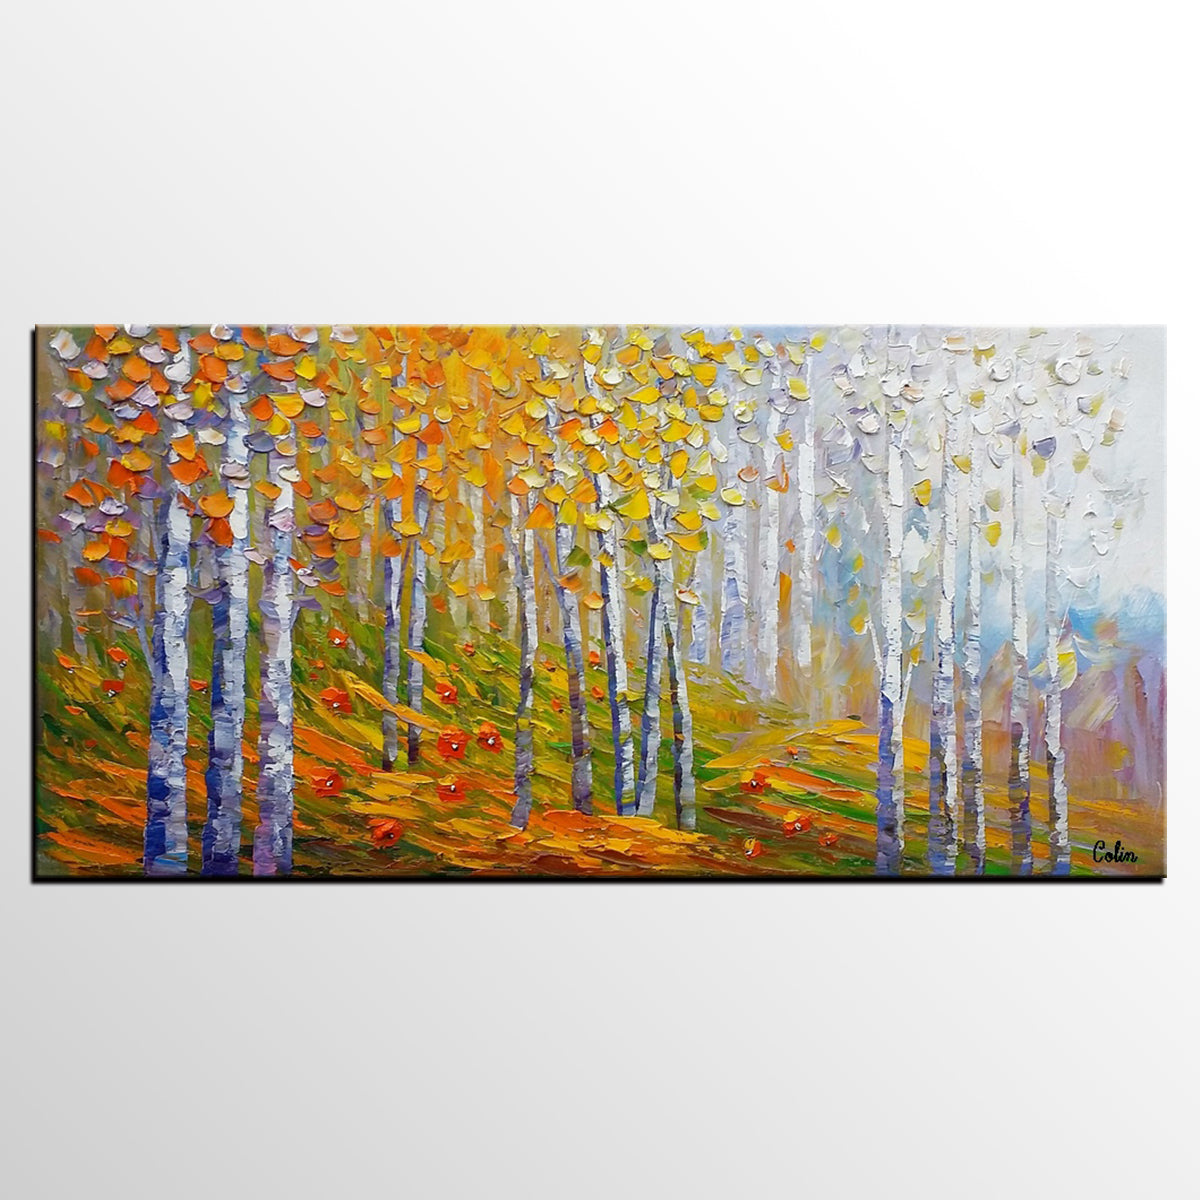 Landscape Painting, Oil Painting, Abstract Painting, Large Art, Canvas Art, Living Room Wall Art, Canvas Painting, Modern Art - artworkcanvas